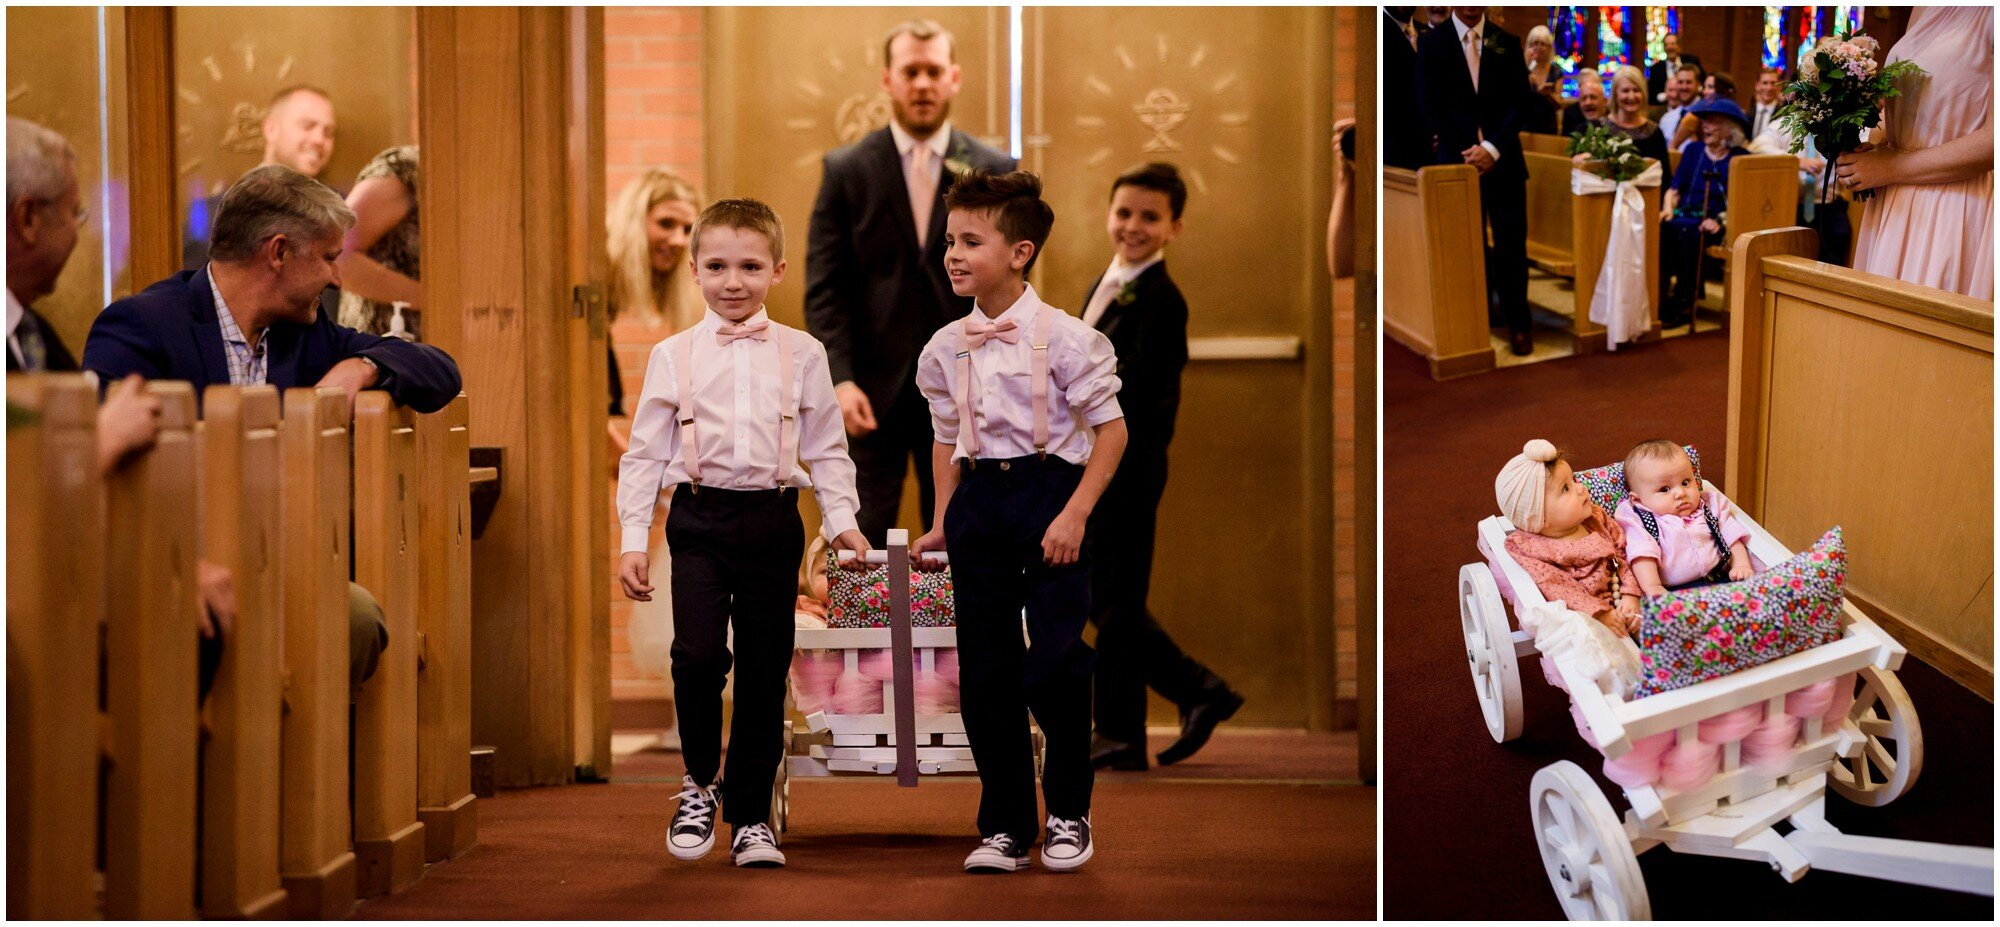 Ring bearers pull baby flower girl and ring bearer in wagon down aisle